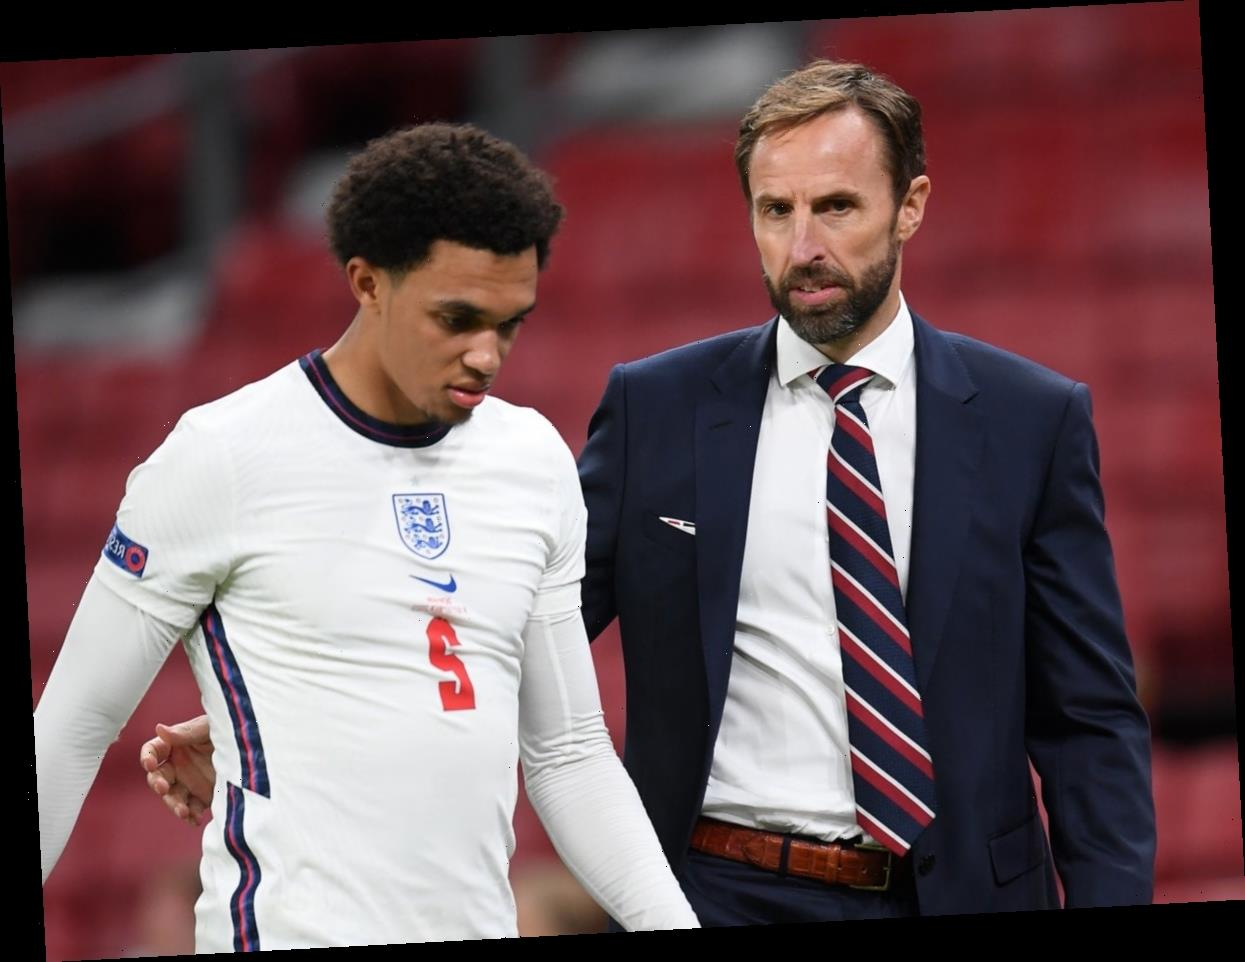 Gareth Southgate under scrutiny with tough decisions to make